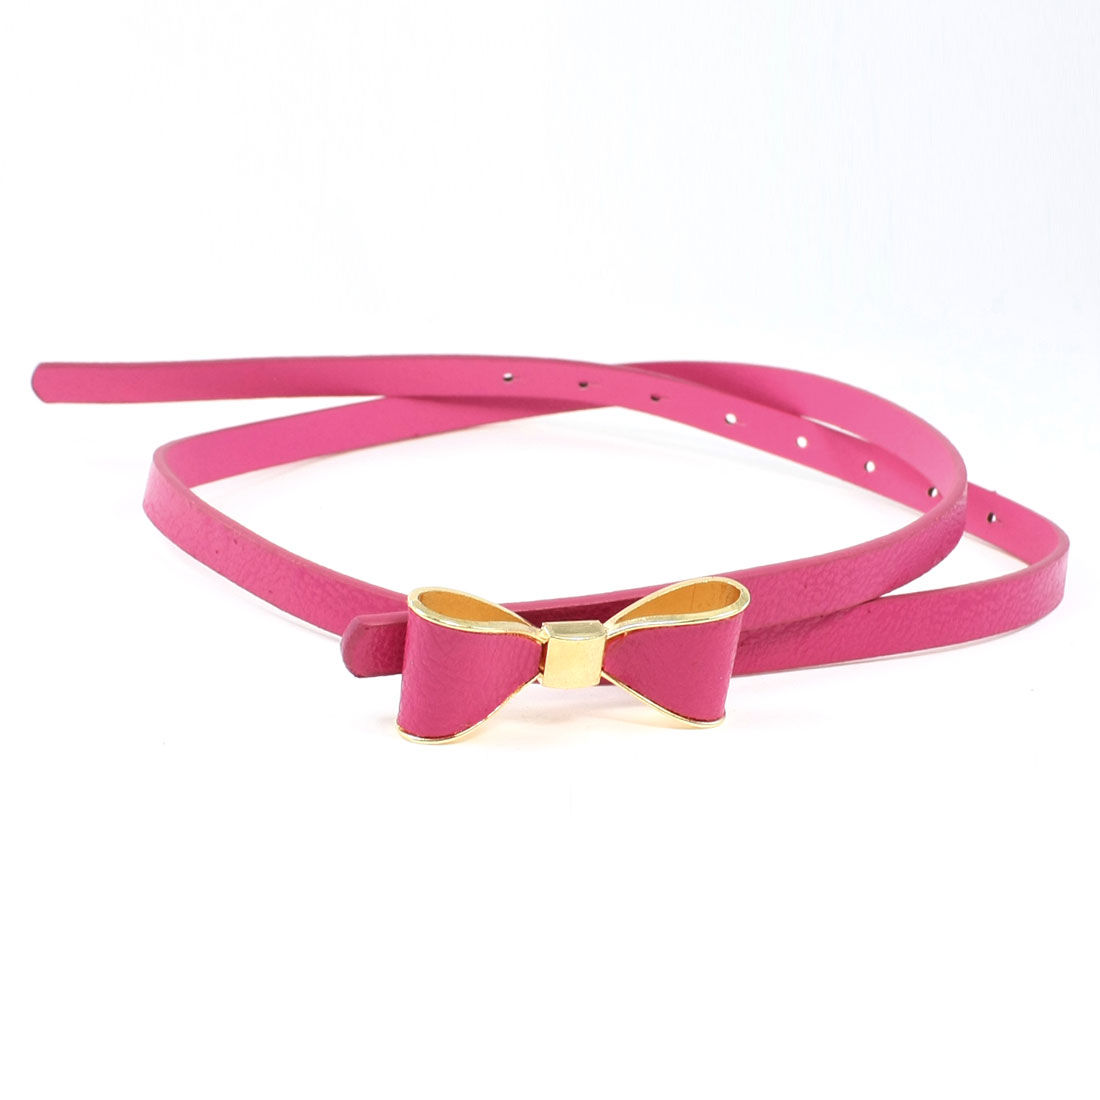 Lady Faux Leather Bowknot Gold Tone Buckle Adjustable Fuchsia Slim Band Belt